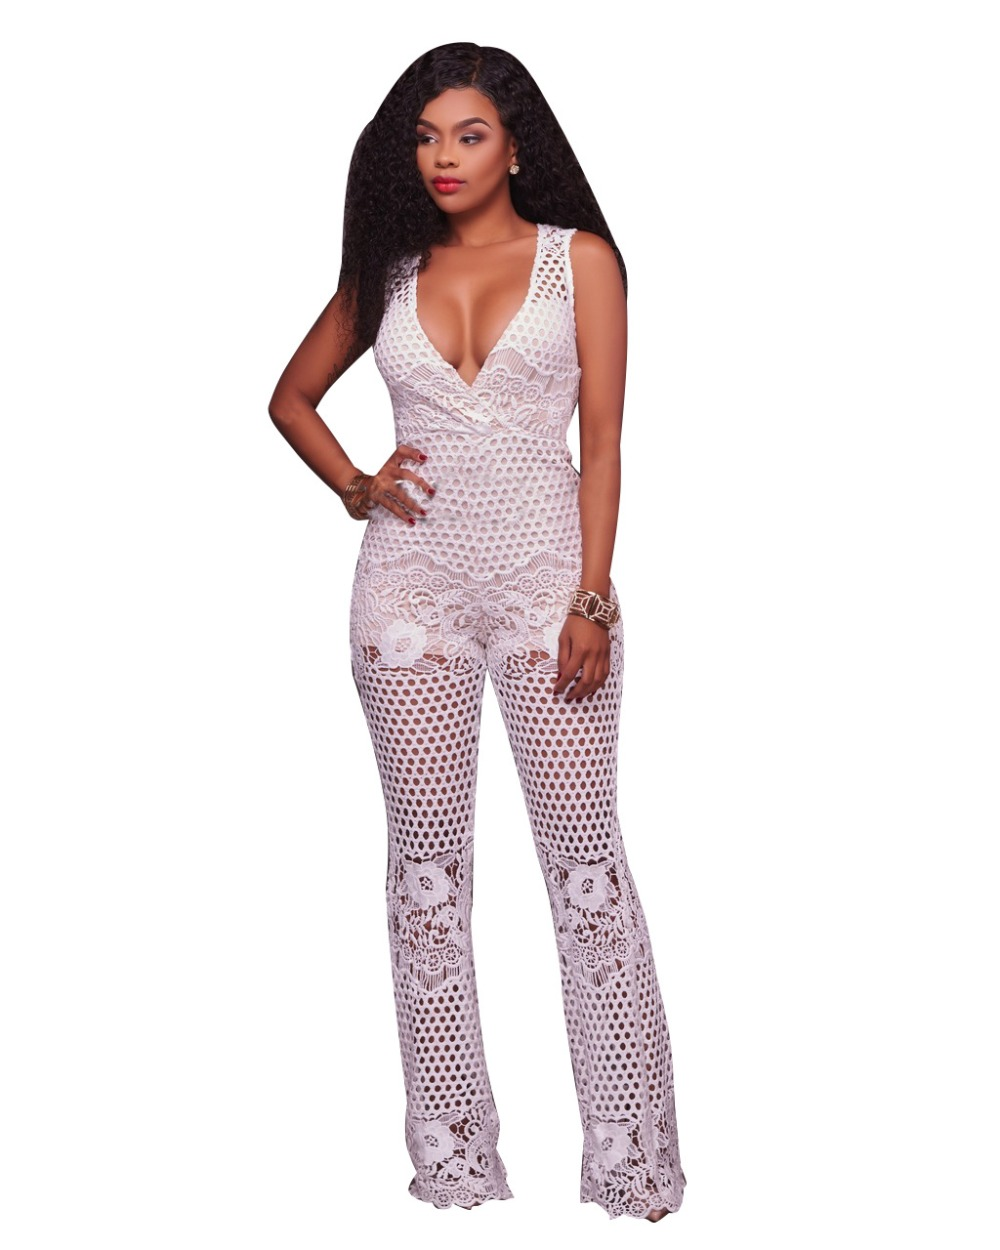 Floral Print Lace Crochet Translucent Overalls Black White V Neck See Through Back Zipper Club Jumpsuit Enteritos Mujer